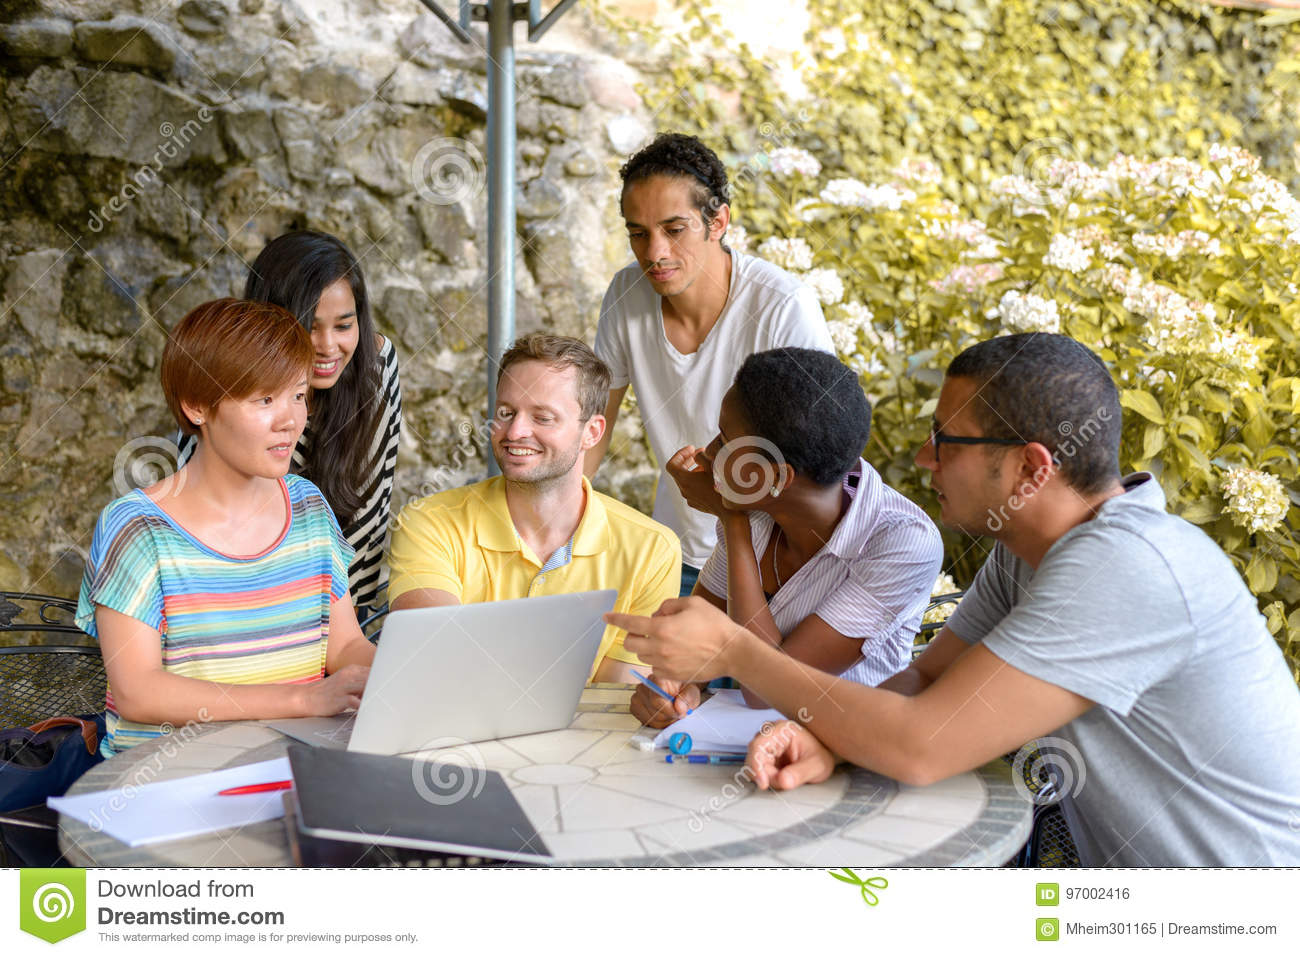 Multicultural group of people discussing by laptop